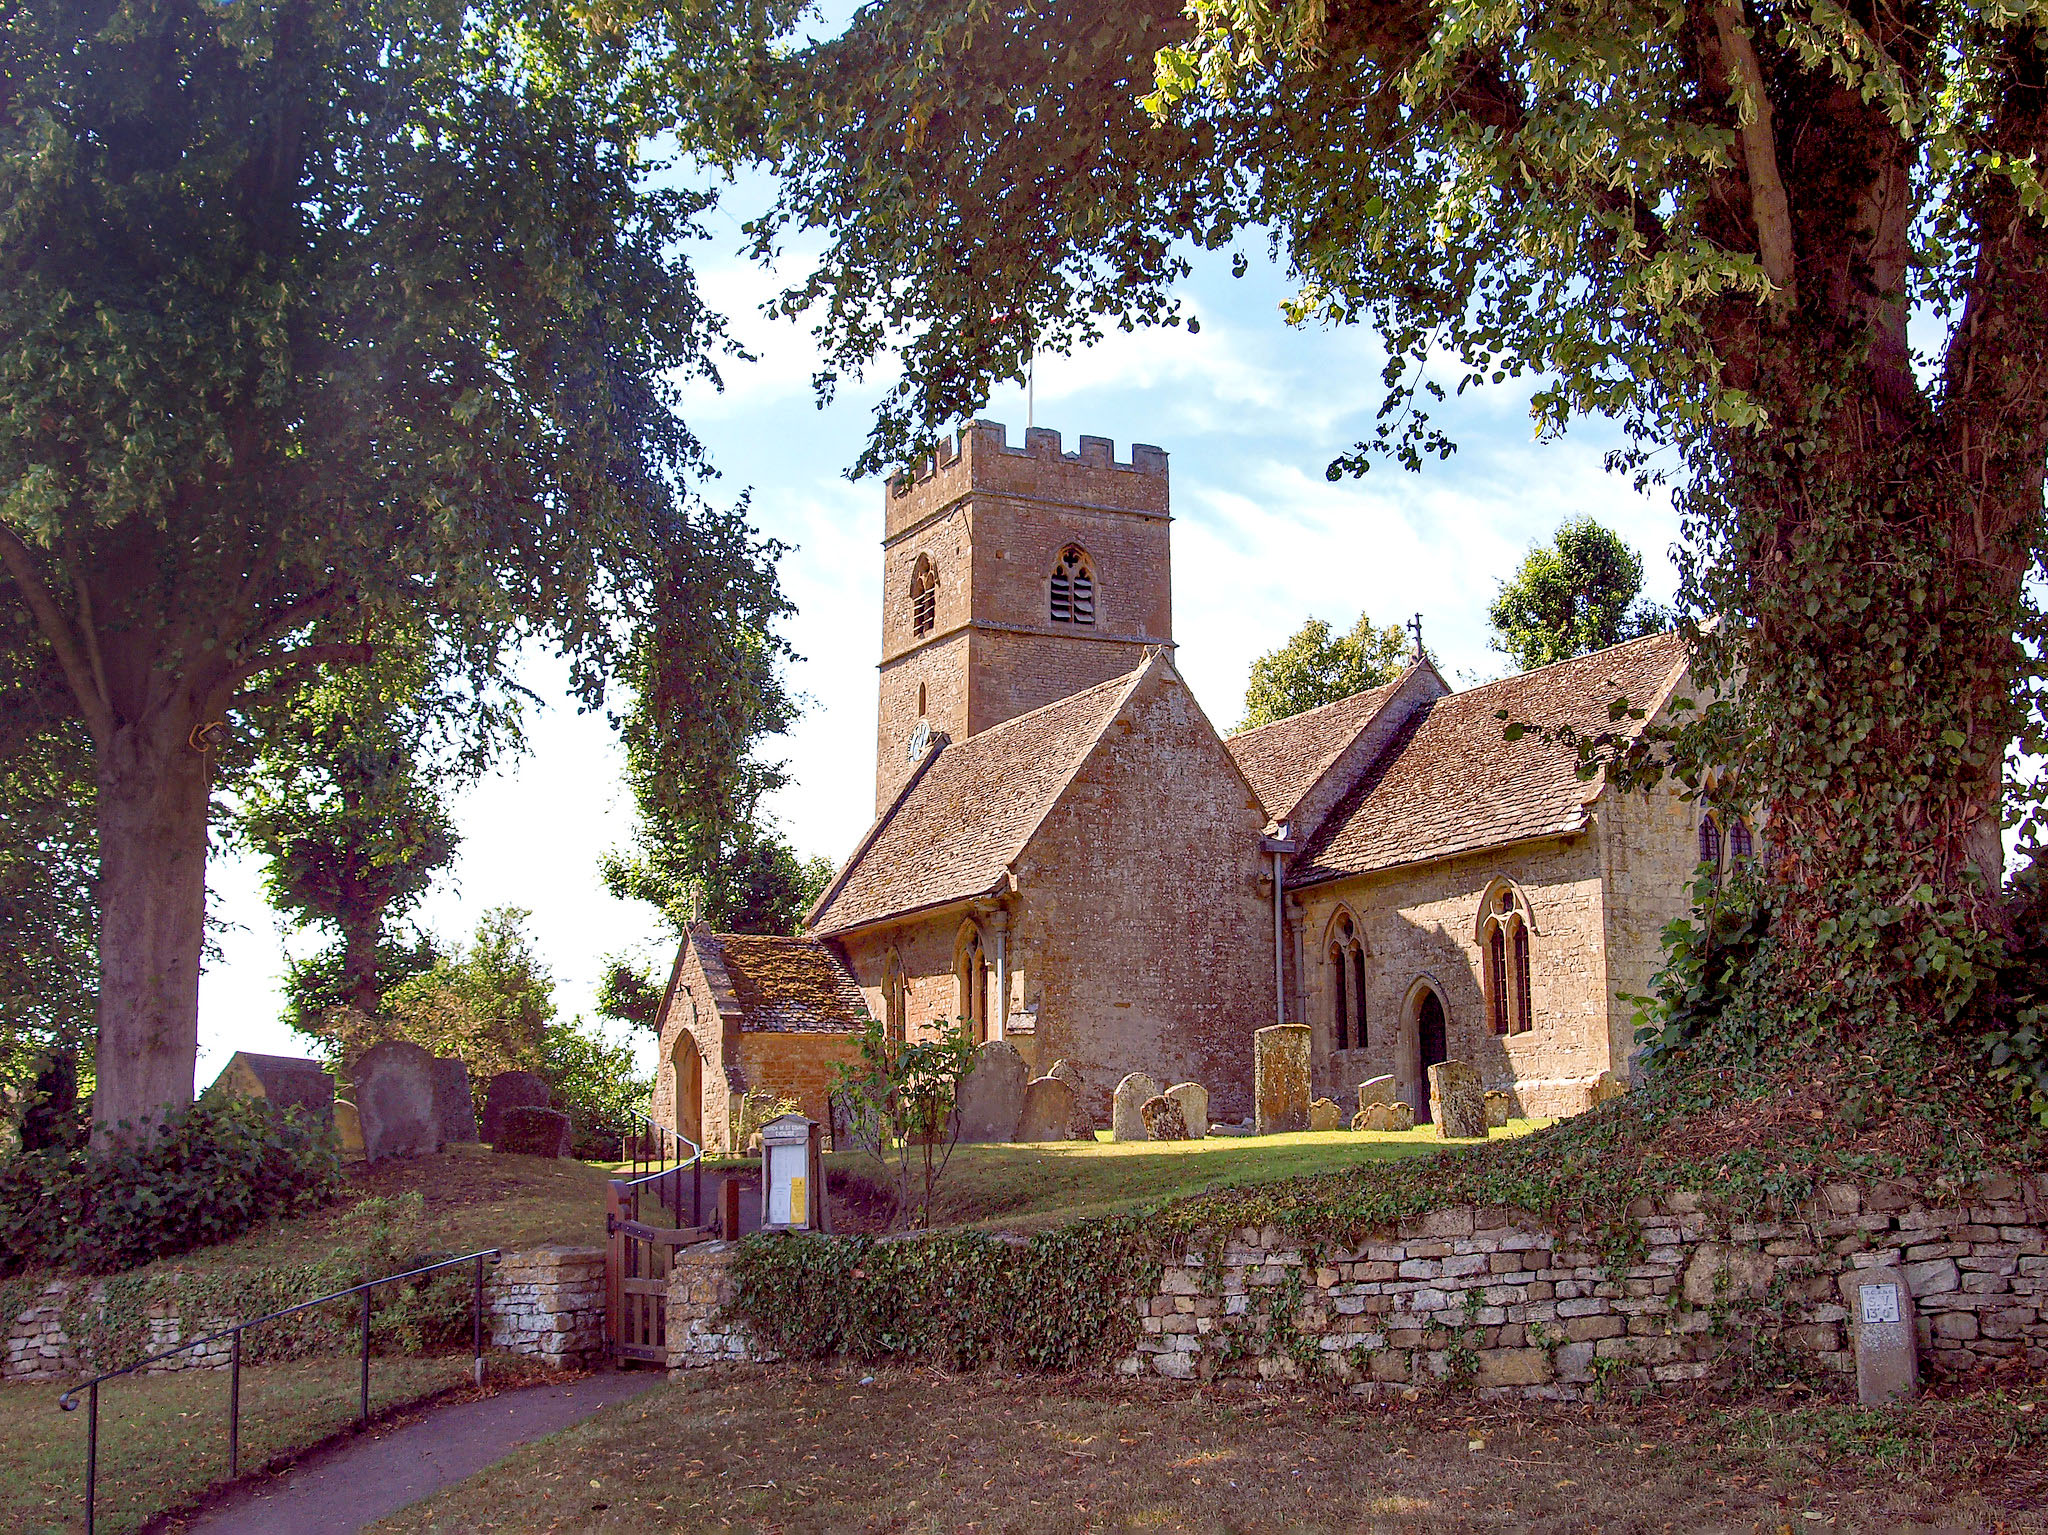 The Church of St Edward King & Martyr, Evenlode, Gloucestershire by Andrew S Brown.jpg